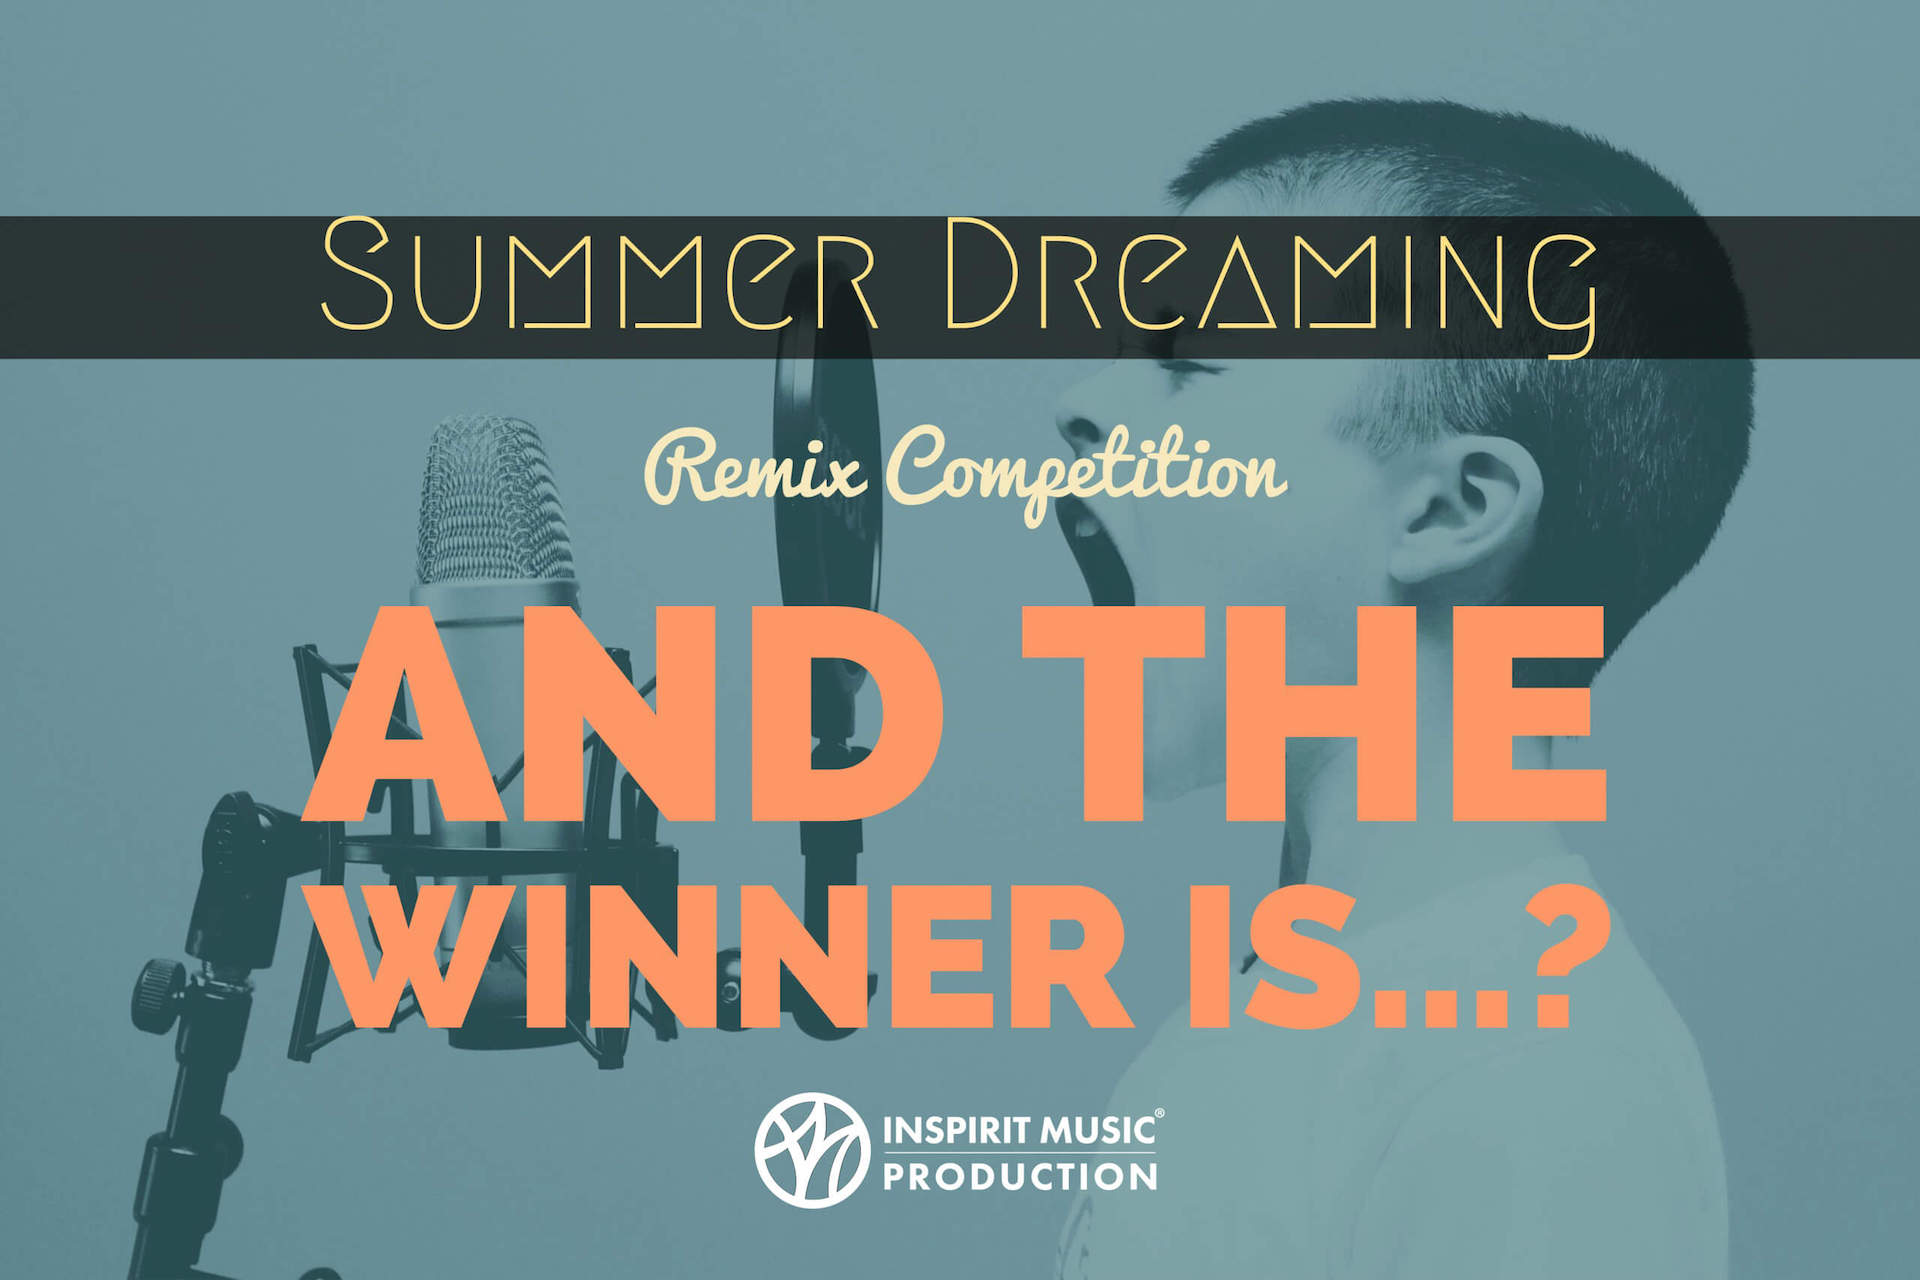 Remixcompetition 👉🏻And The Winner Is…?